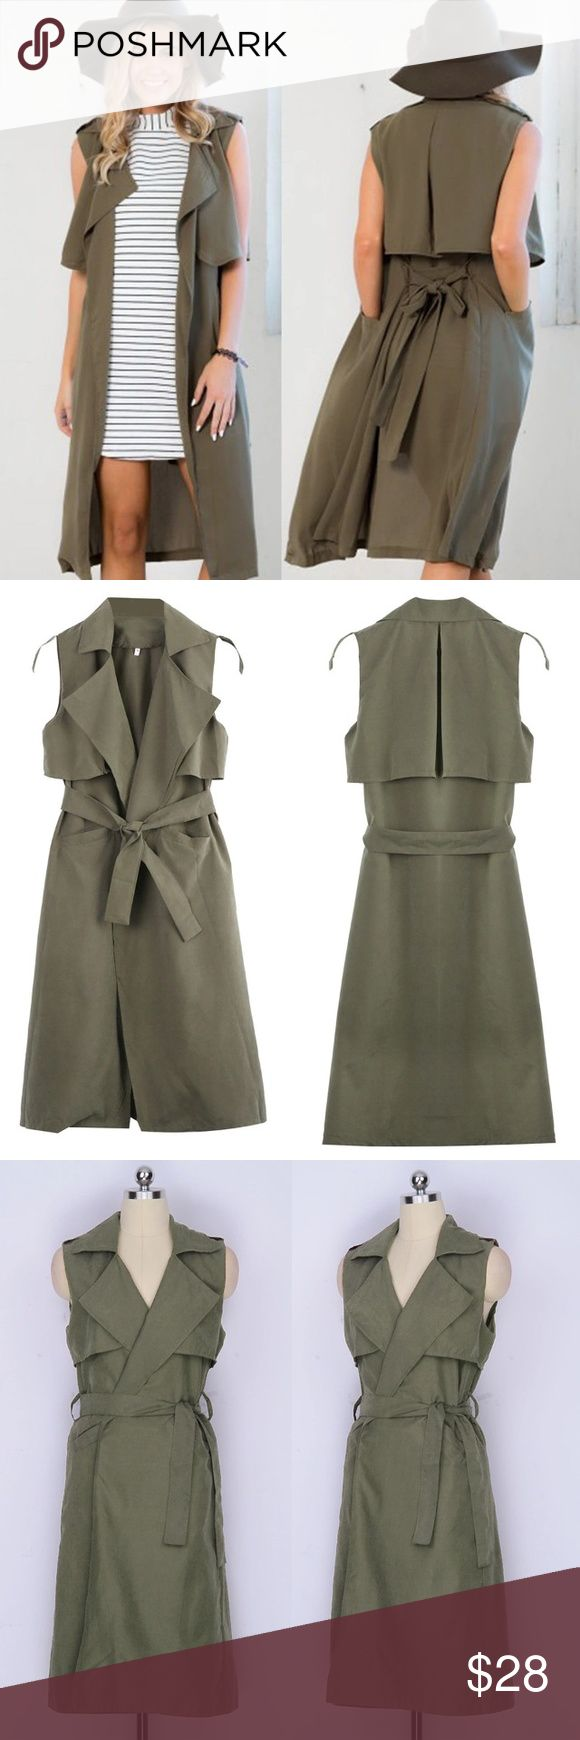 """Long Vest Waistcoat Casual and Cool! Belt Tie and Pockets, Long Vest. Bust: 34"""" Length: 42"""" Jackets & Coats Vests"""